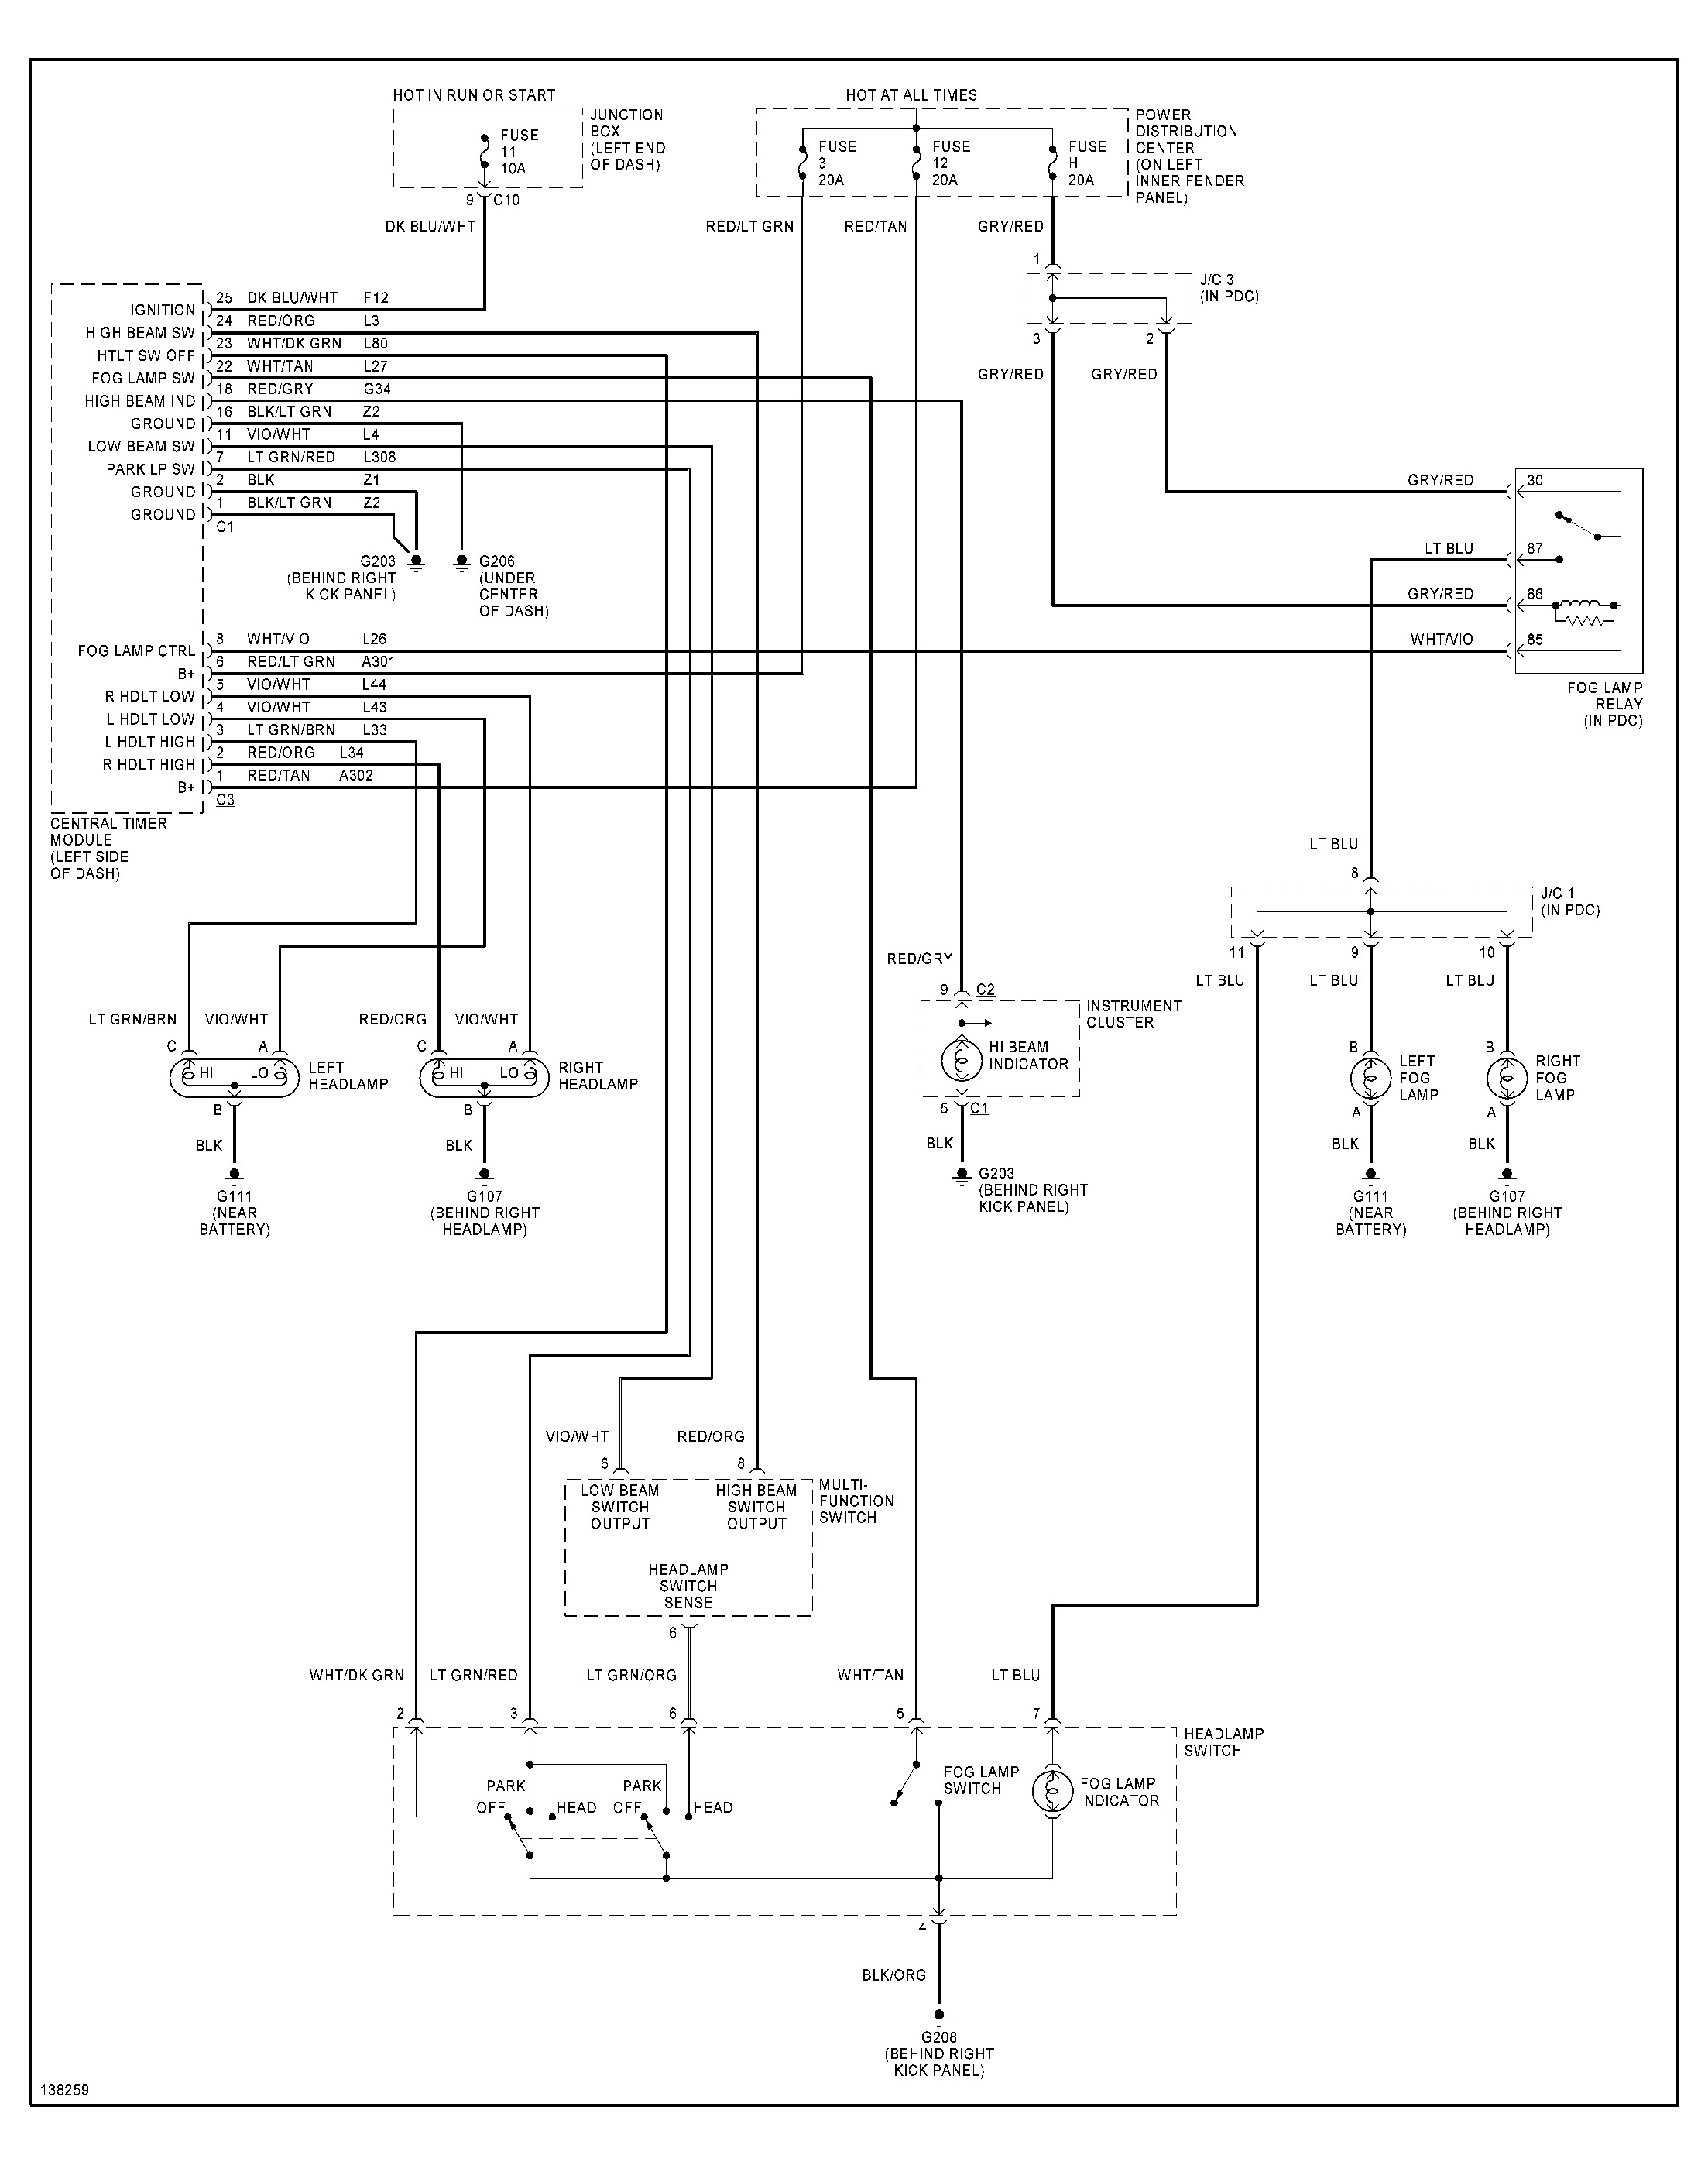 Miraculous 2001 Dodge Dakota Headlight Wiring Diagram Wiring Diagram Data Wiring Cloud Xempagosophoxytasticioscodnessplanboapumohammedshrineorg